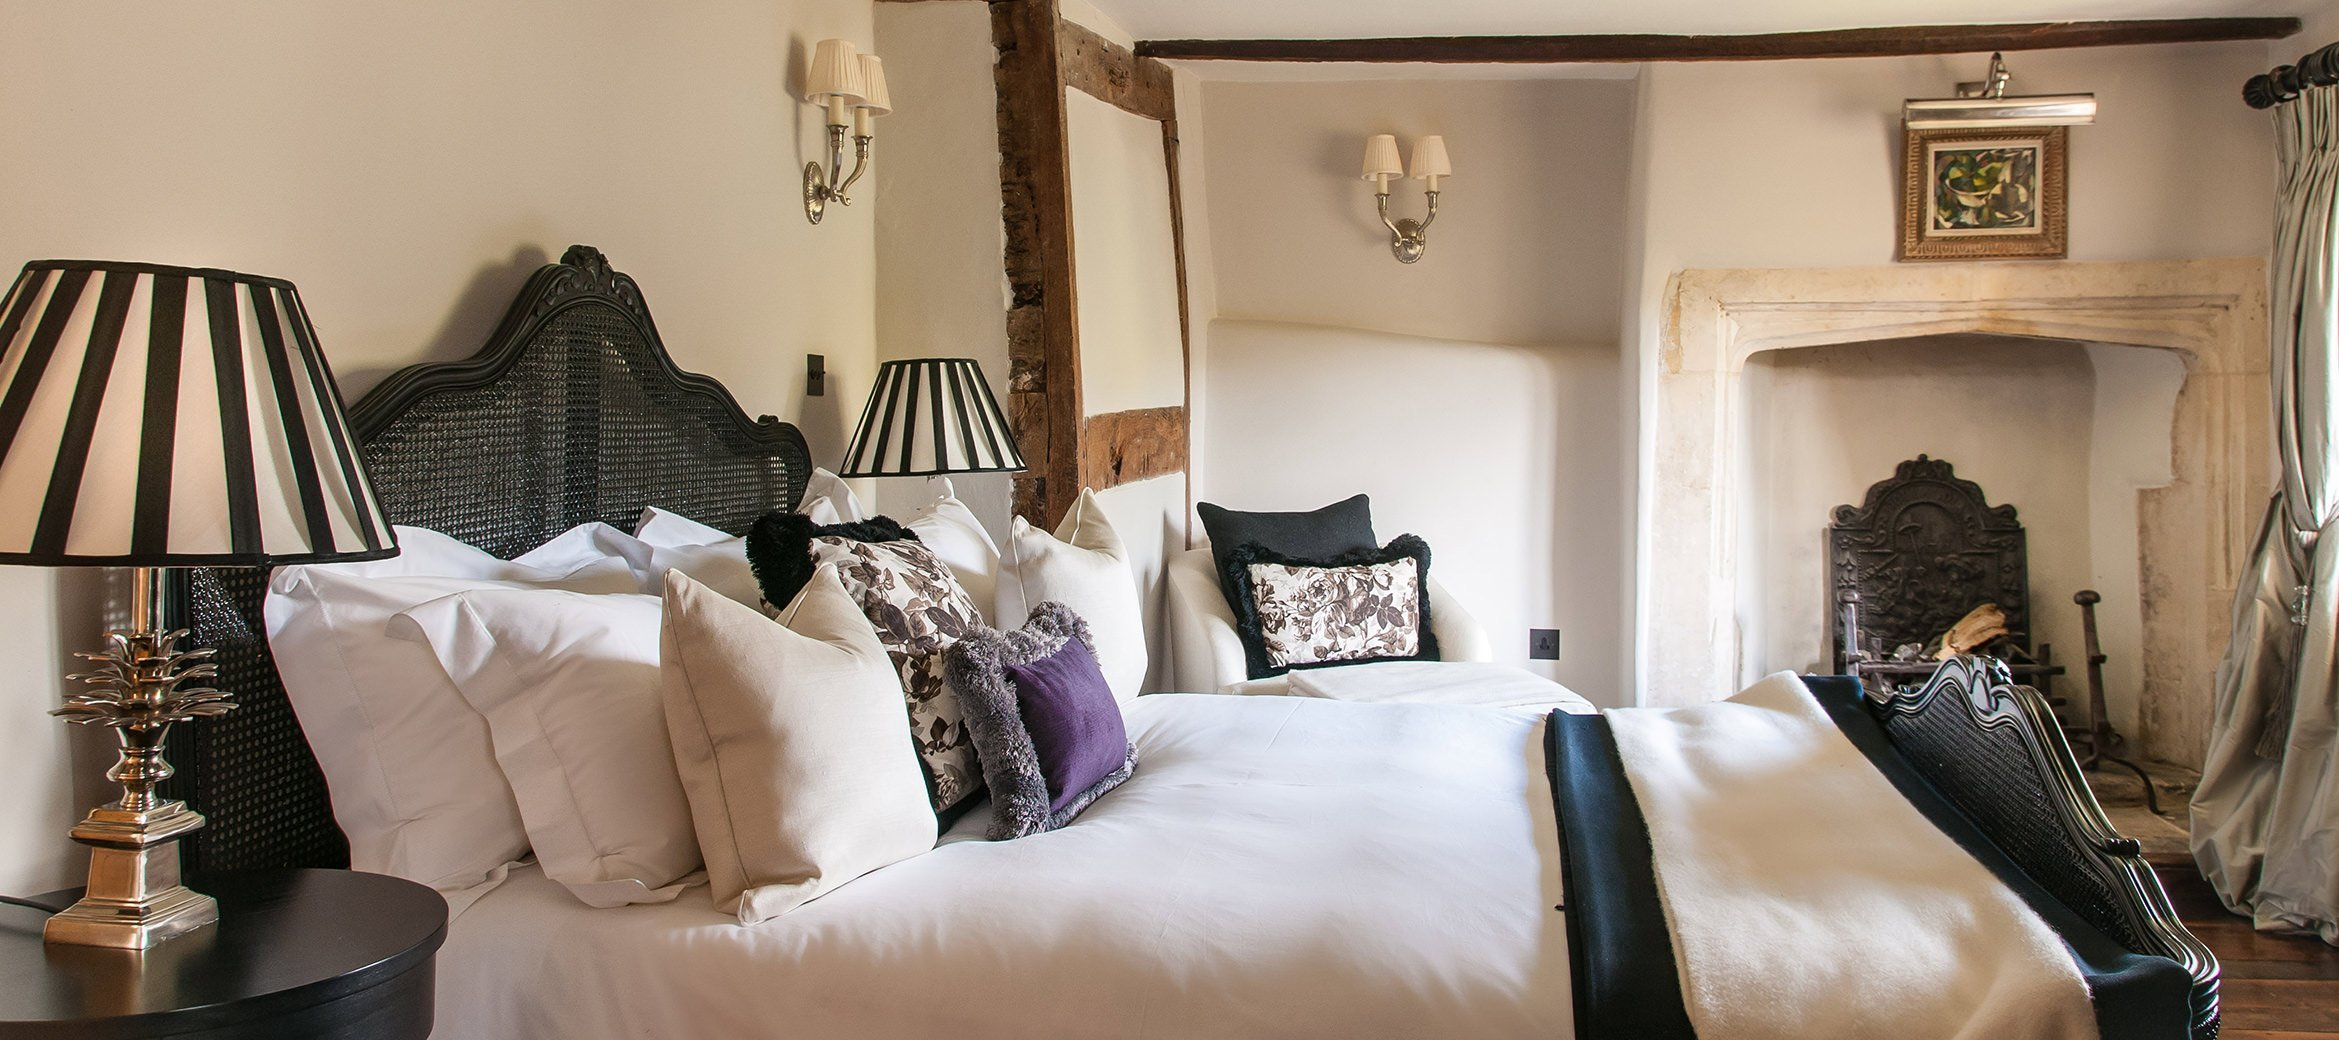 luxury-cotswold-farmhouse-double-bedroom